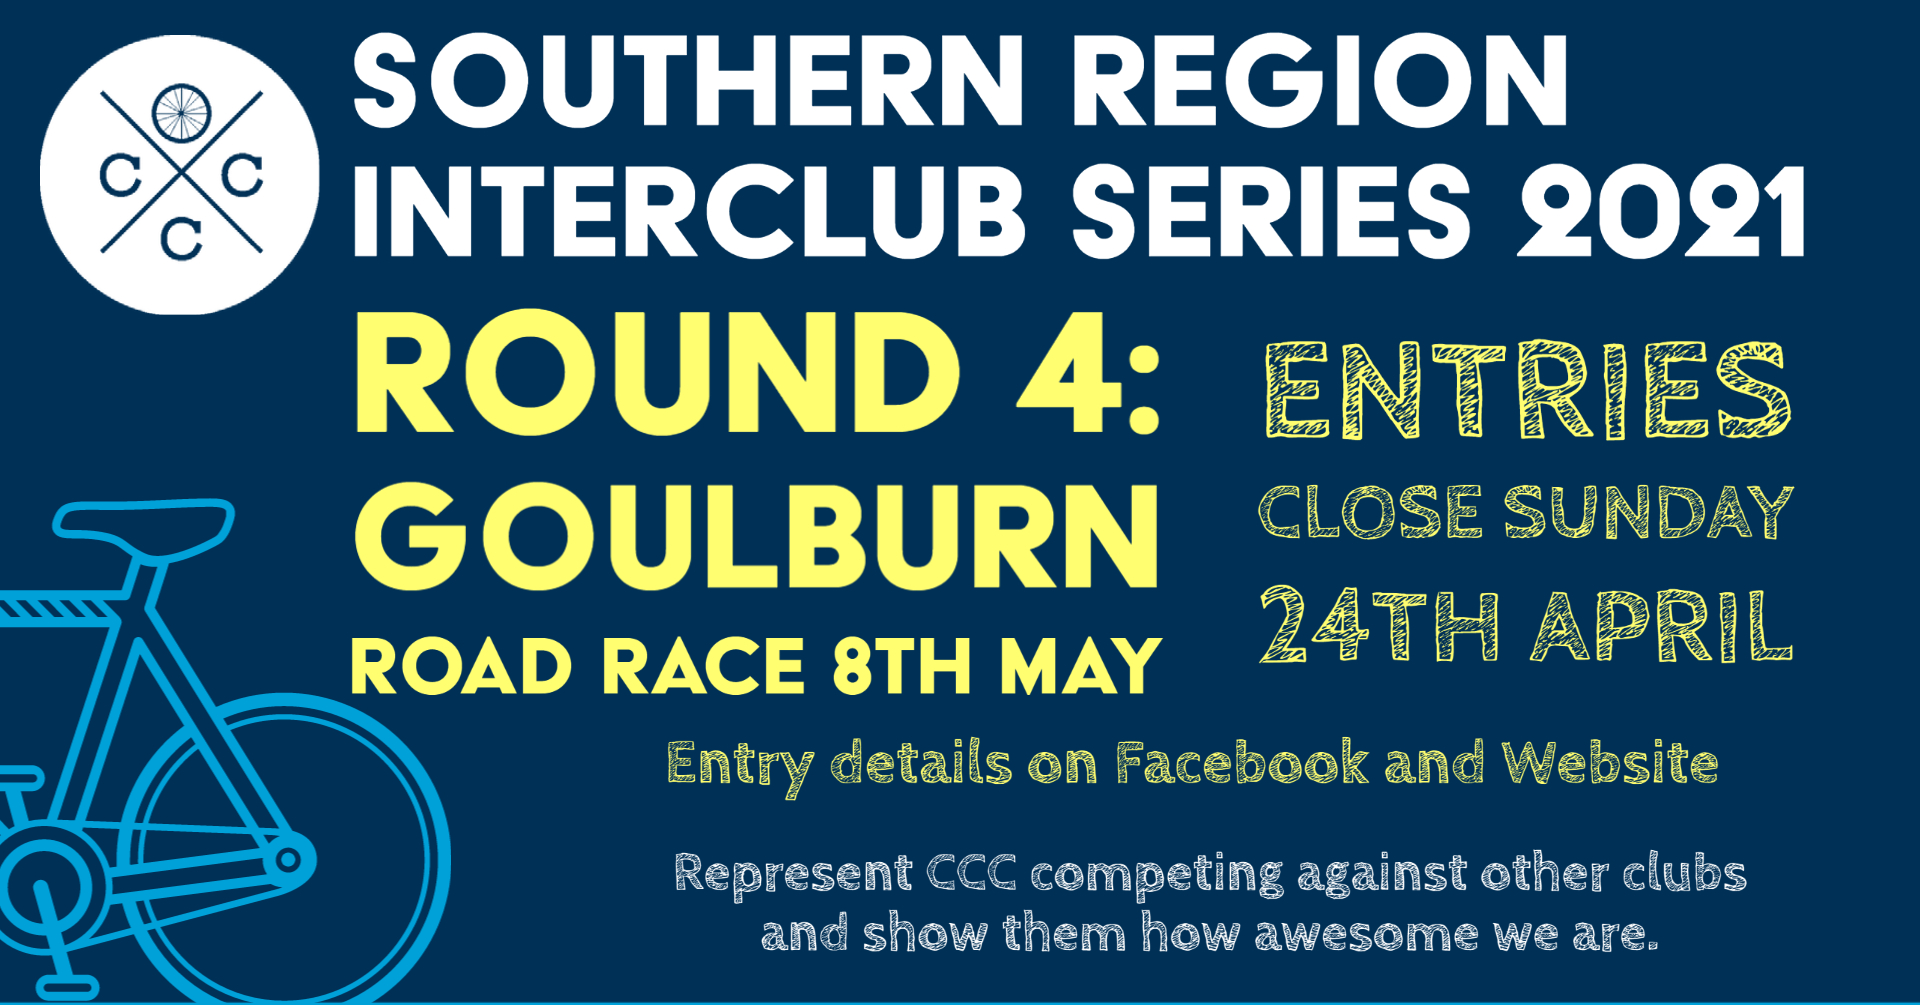 Goulburn Southern Region Interclub road race 2021